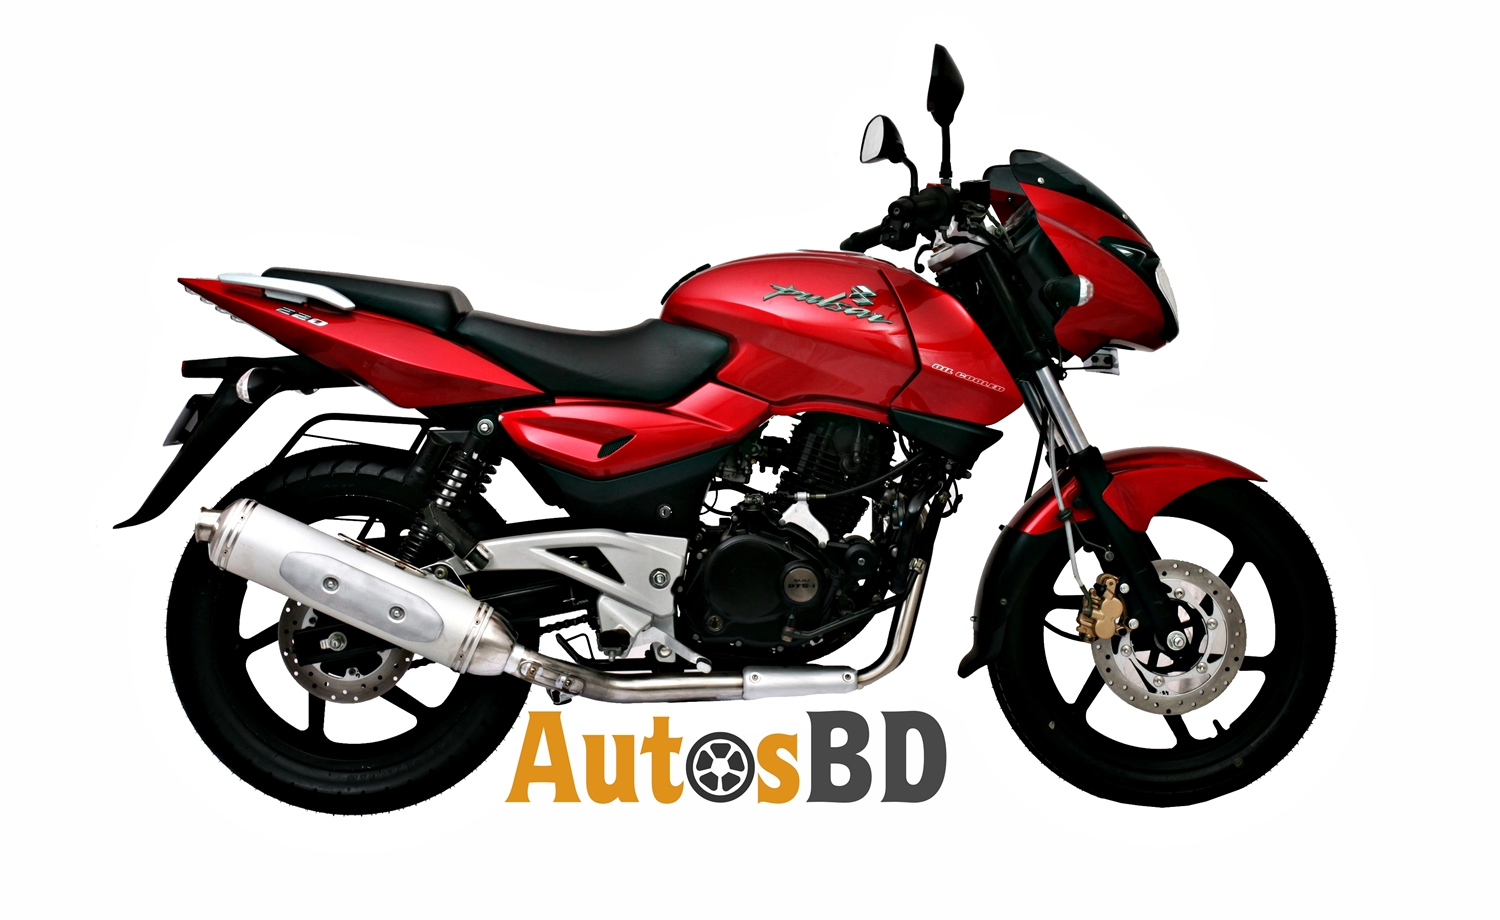 Bajaj Pulsar 150 Motorcycle Specification